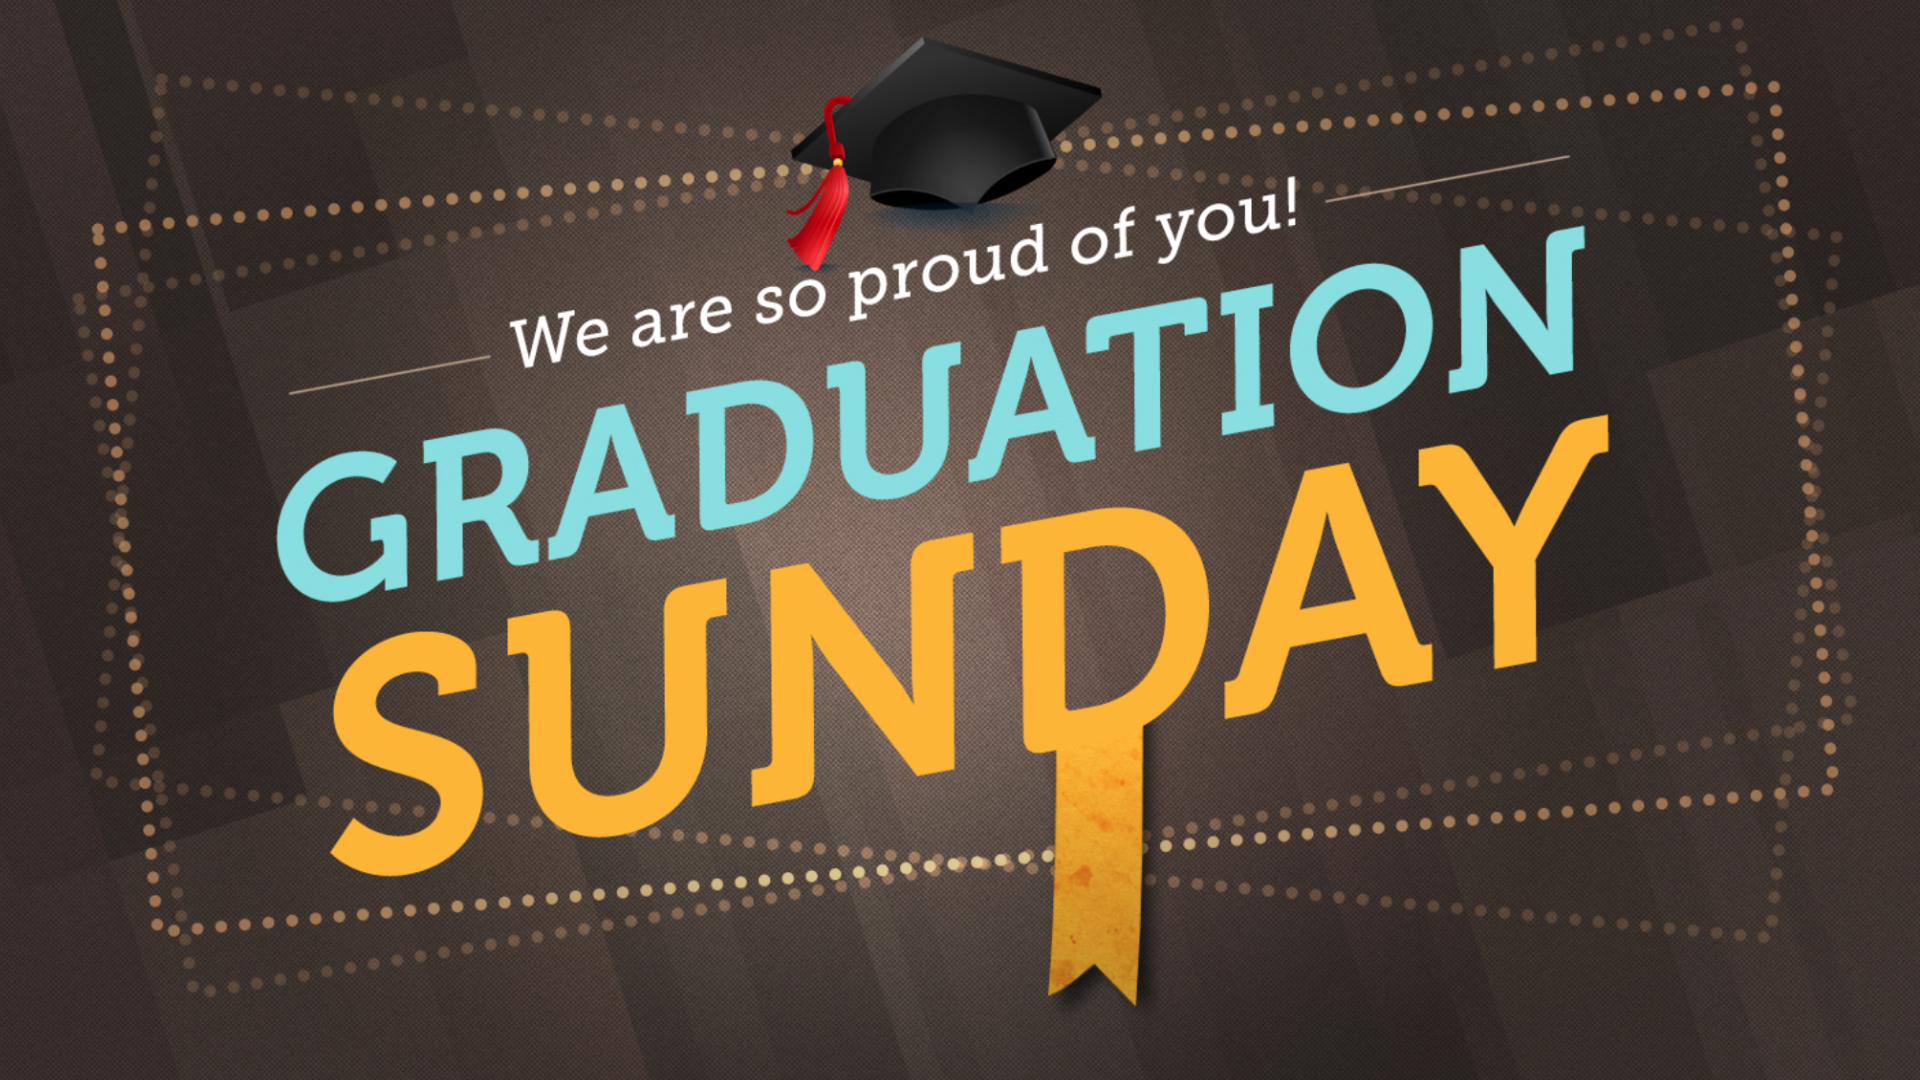 Graduation sunday logo